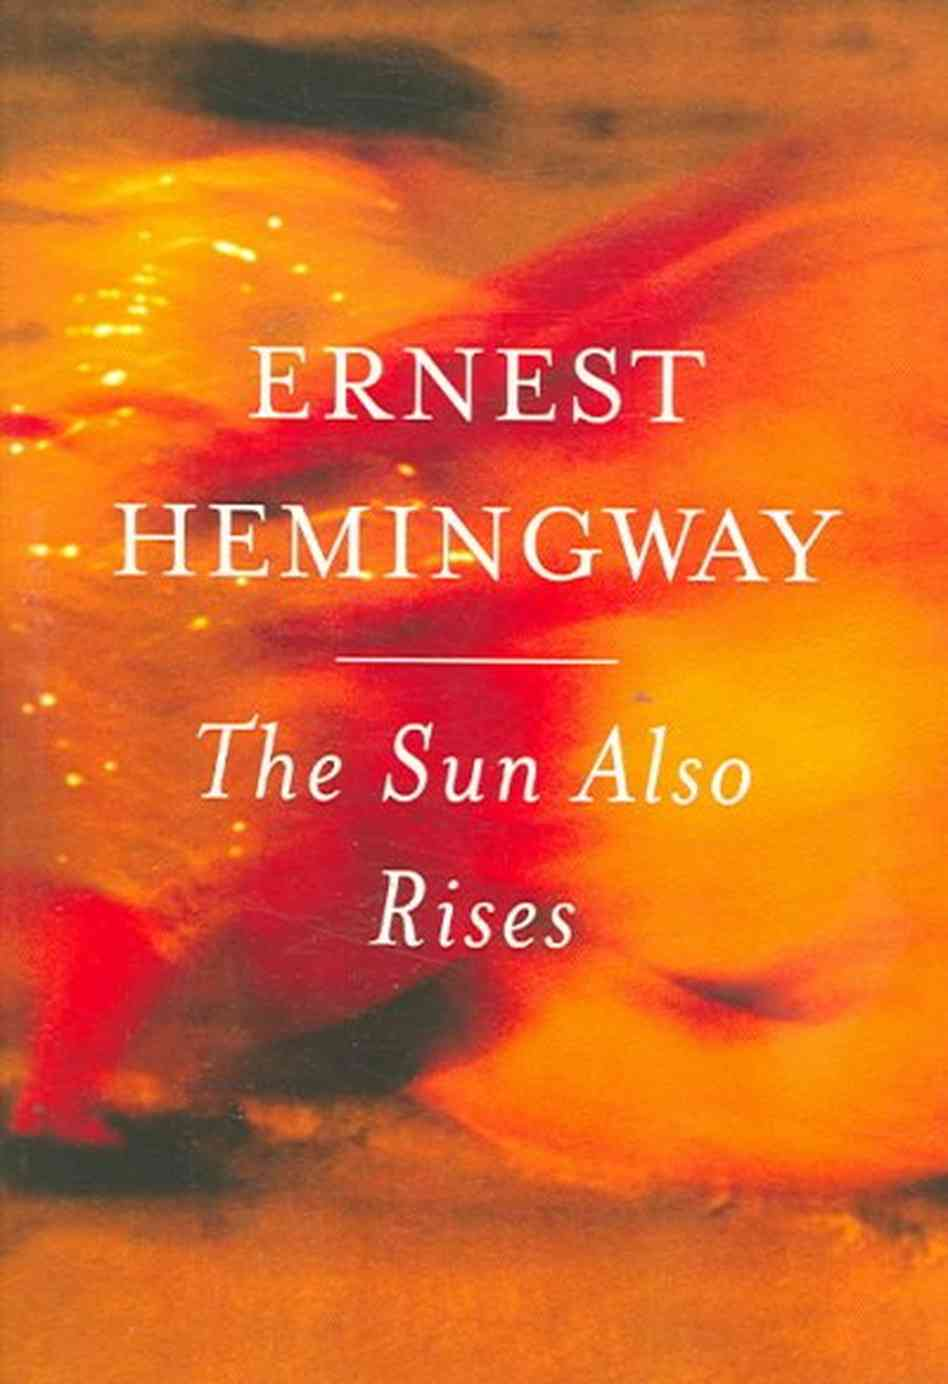 an analysis of a generation lost in the sun also rises by ernest hemmingway The sun also rises by ernest hemingway the novel explores the lives and values of the so-called lost generation, chronicling the experiences of jake barnes and several acquaintances on their pilgrimage to pamplona for the annual san fermin festival and bull fights, known more commonly as the running of the bulls.